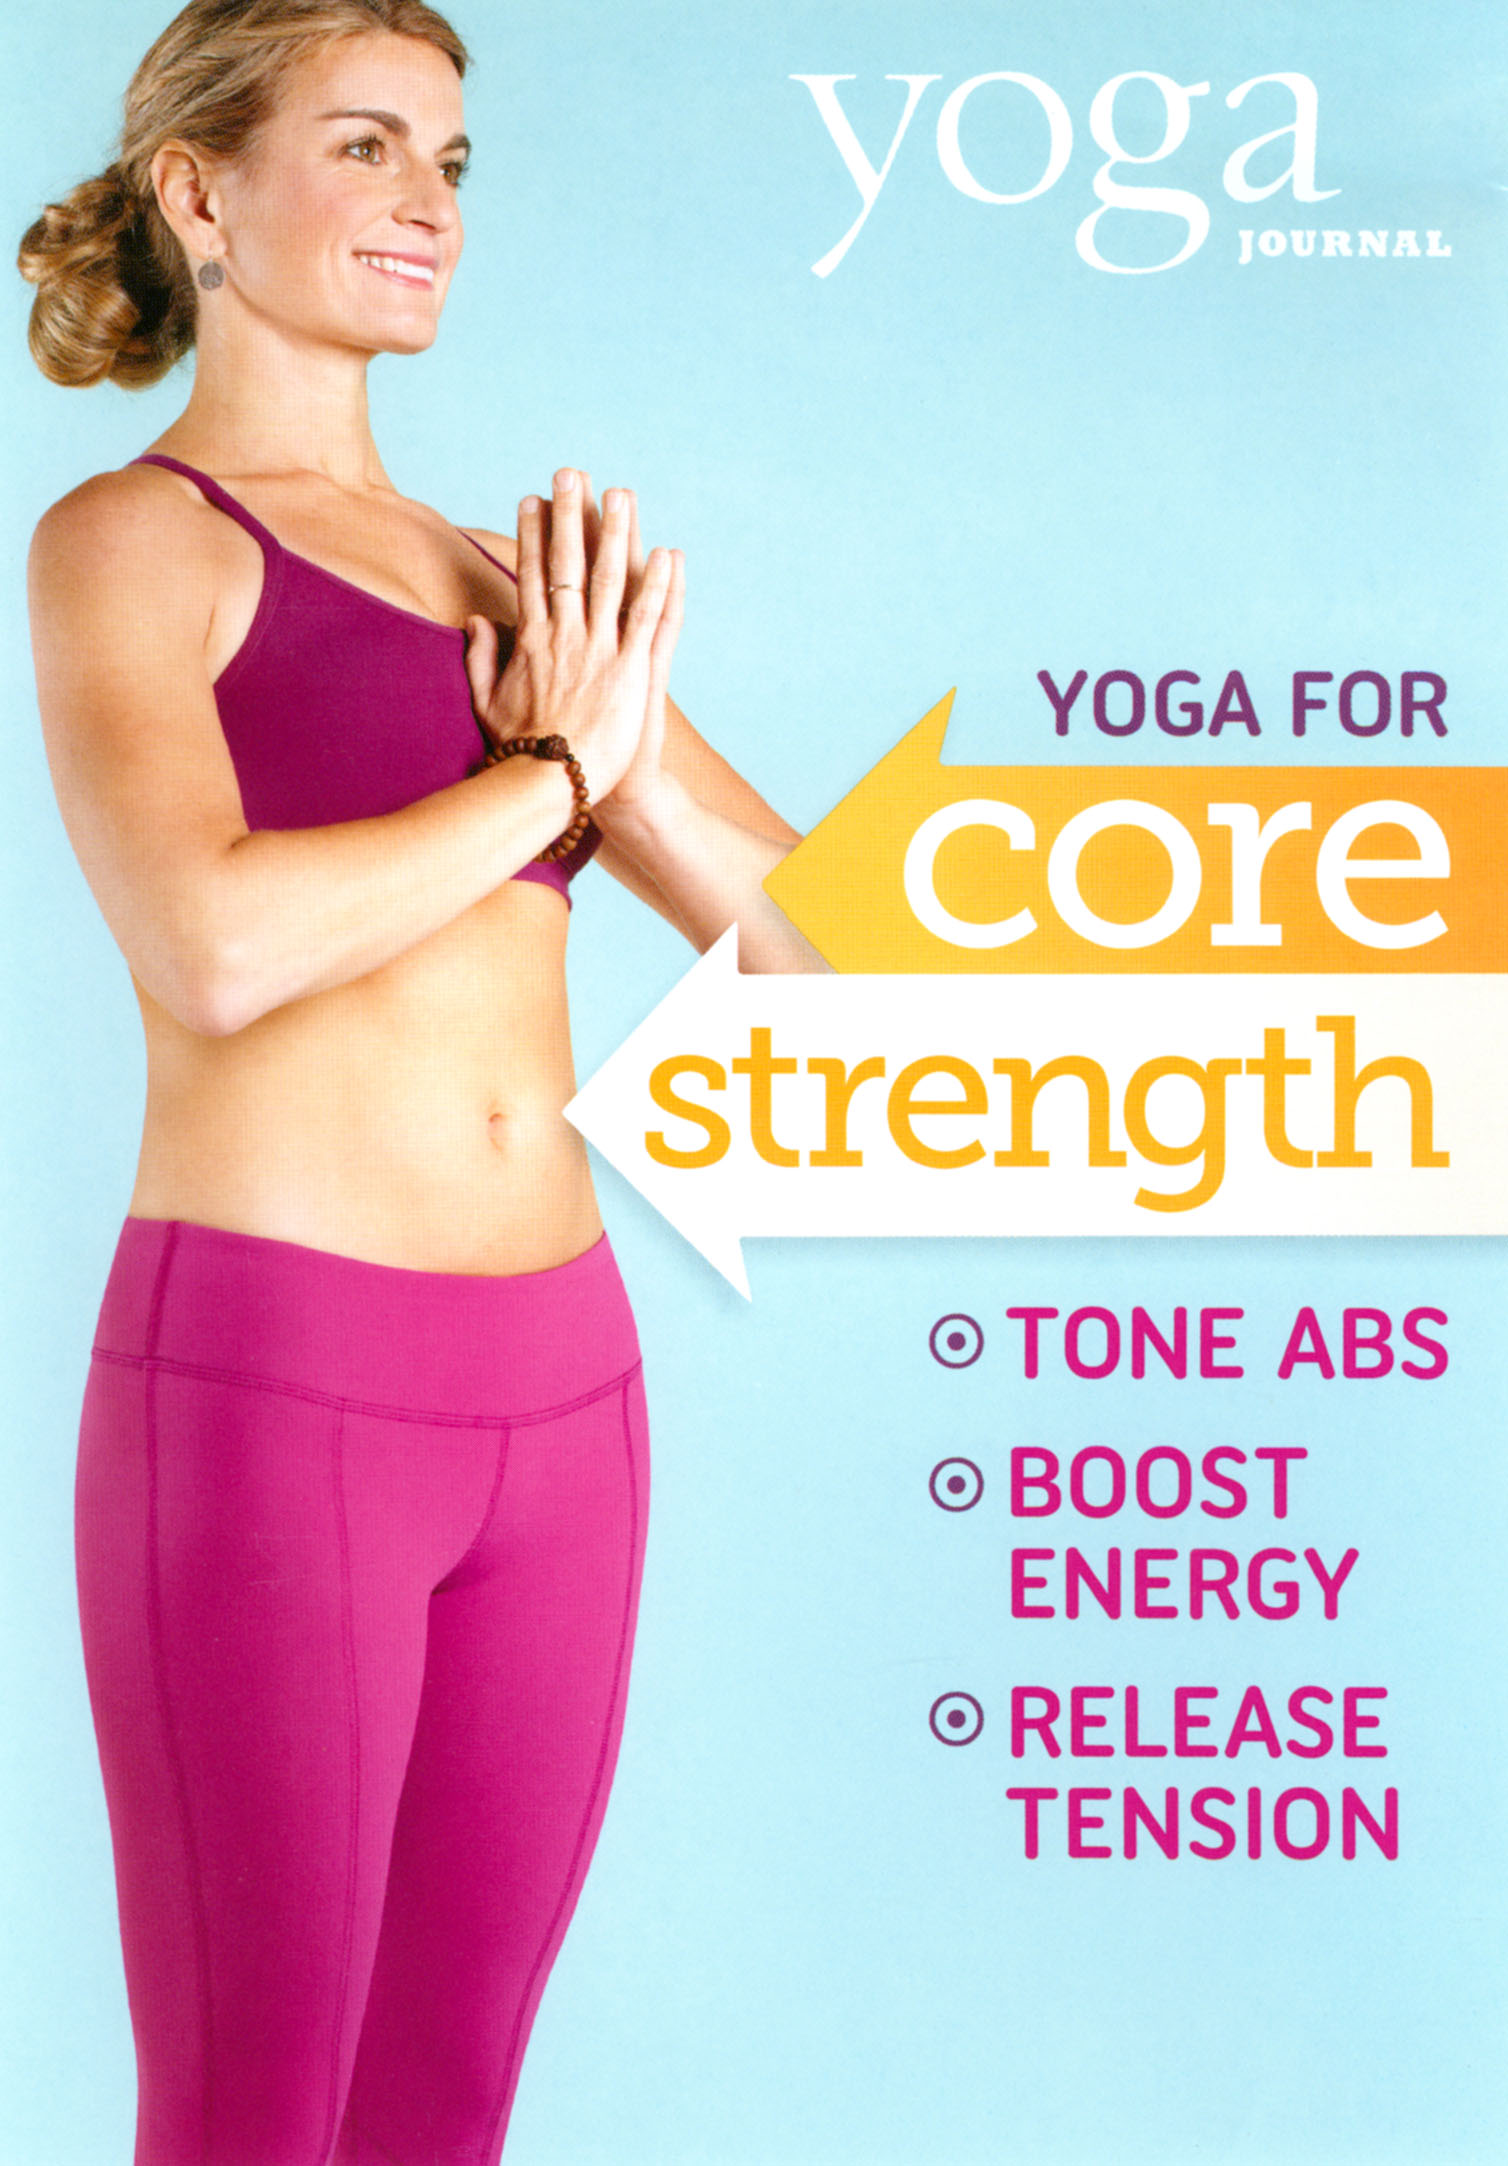 Yoga Journal: Yoga for Core Strength